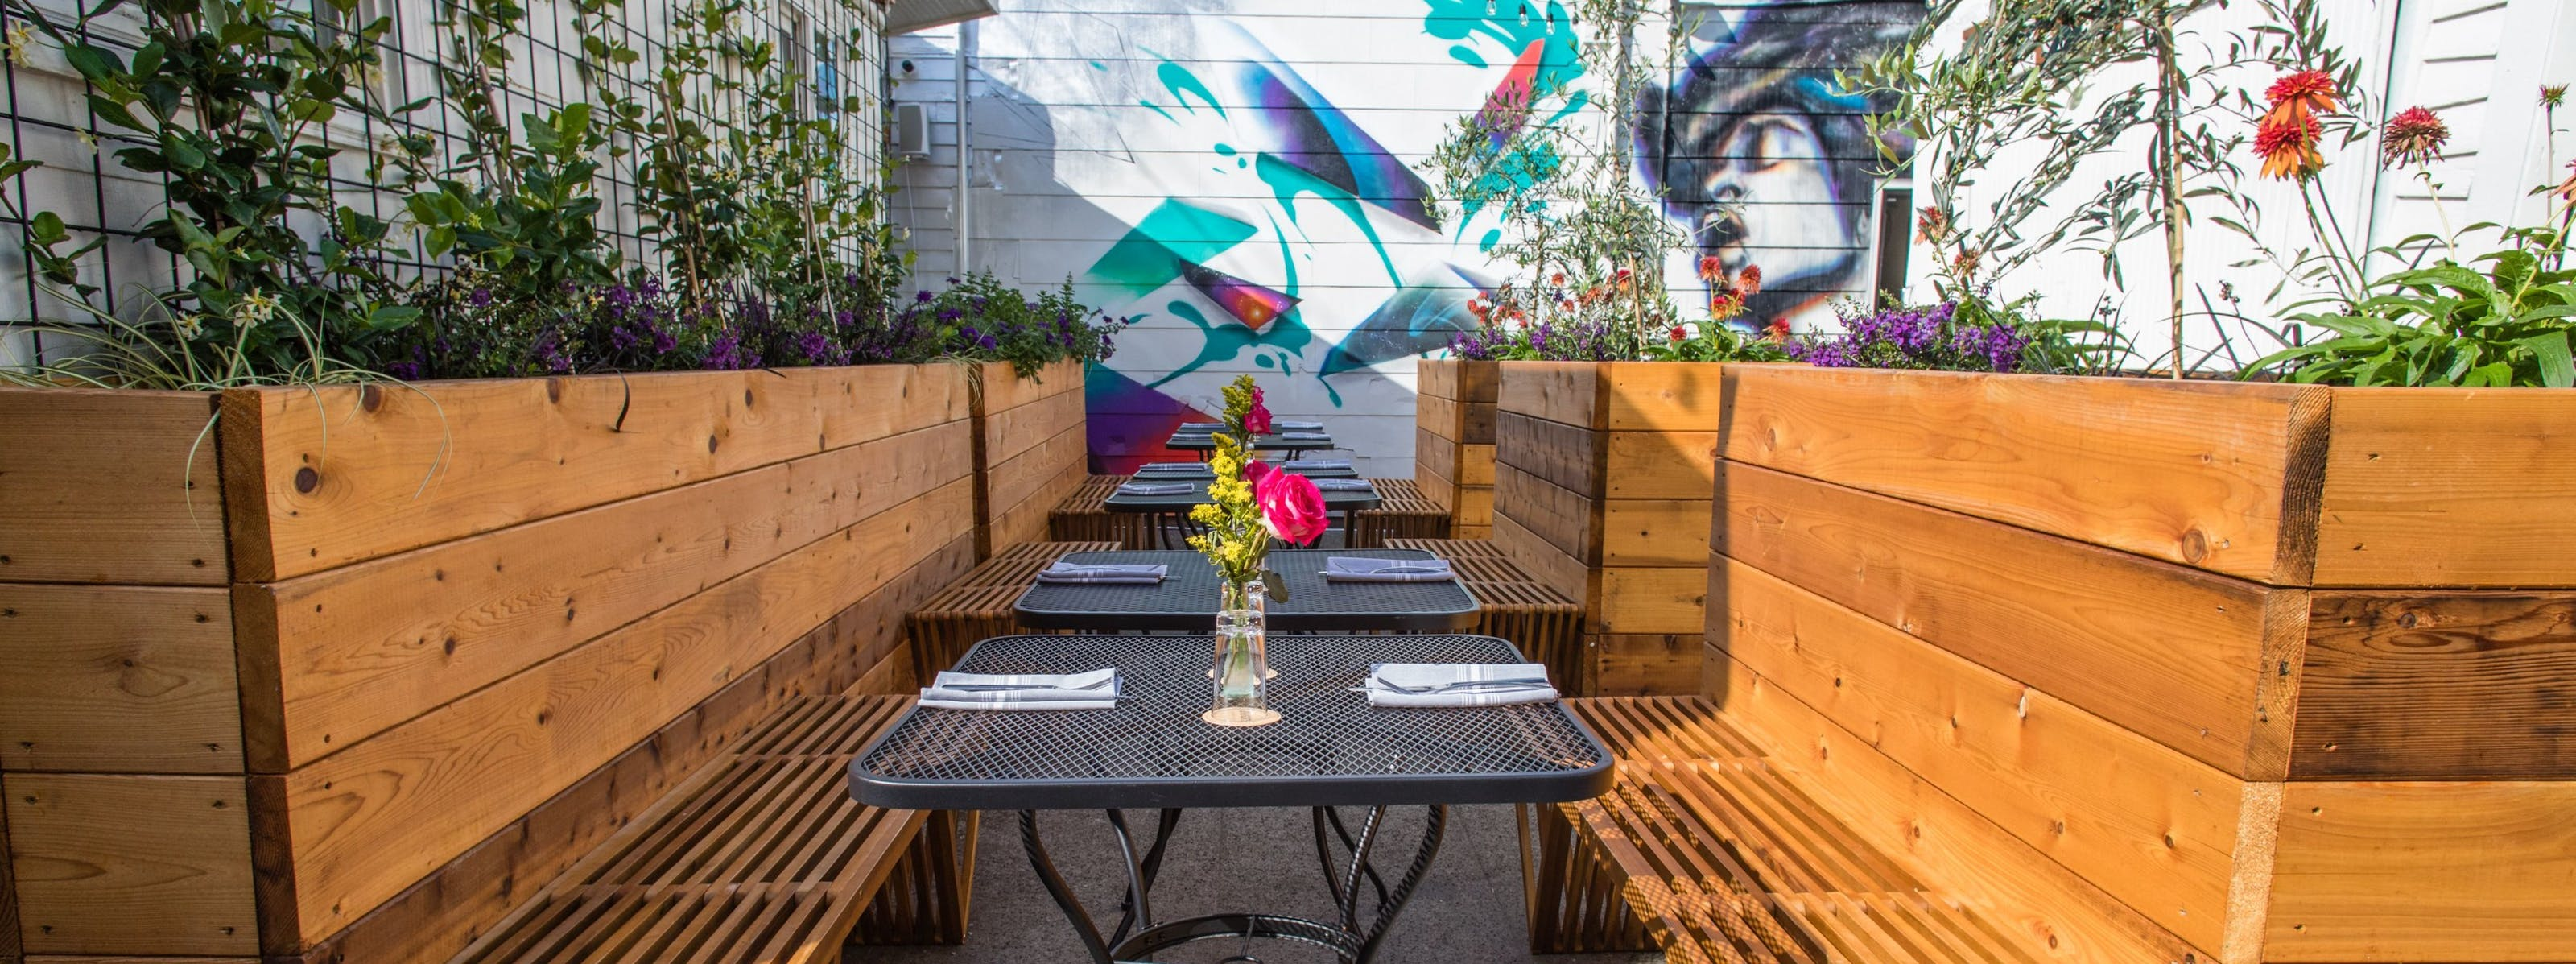 Seattle Restaurants & Bars With Outdoor Seating That Have Reopened